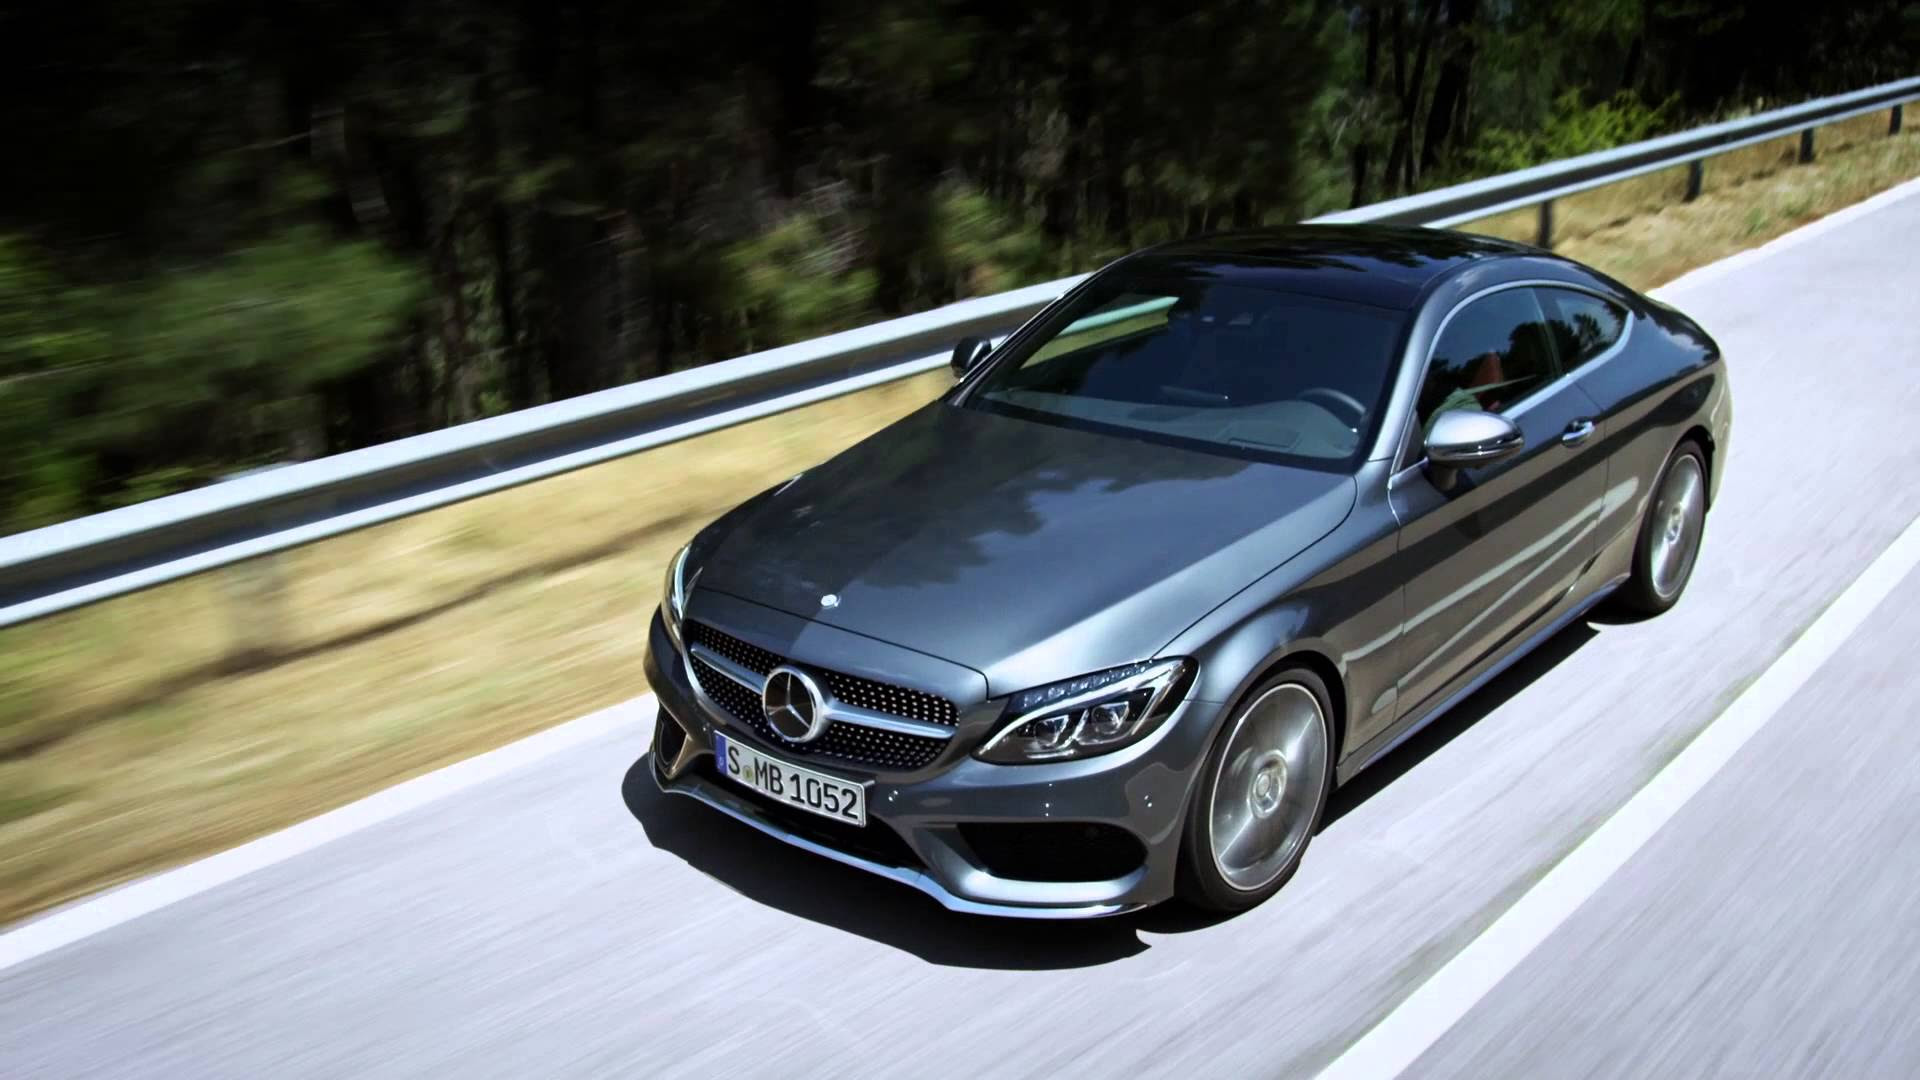 2020 Mercedes-Benz C300 Lease Special at 409/mo with 0 ...